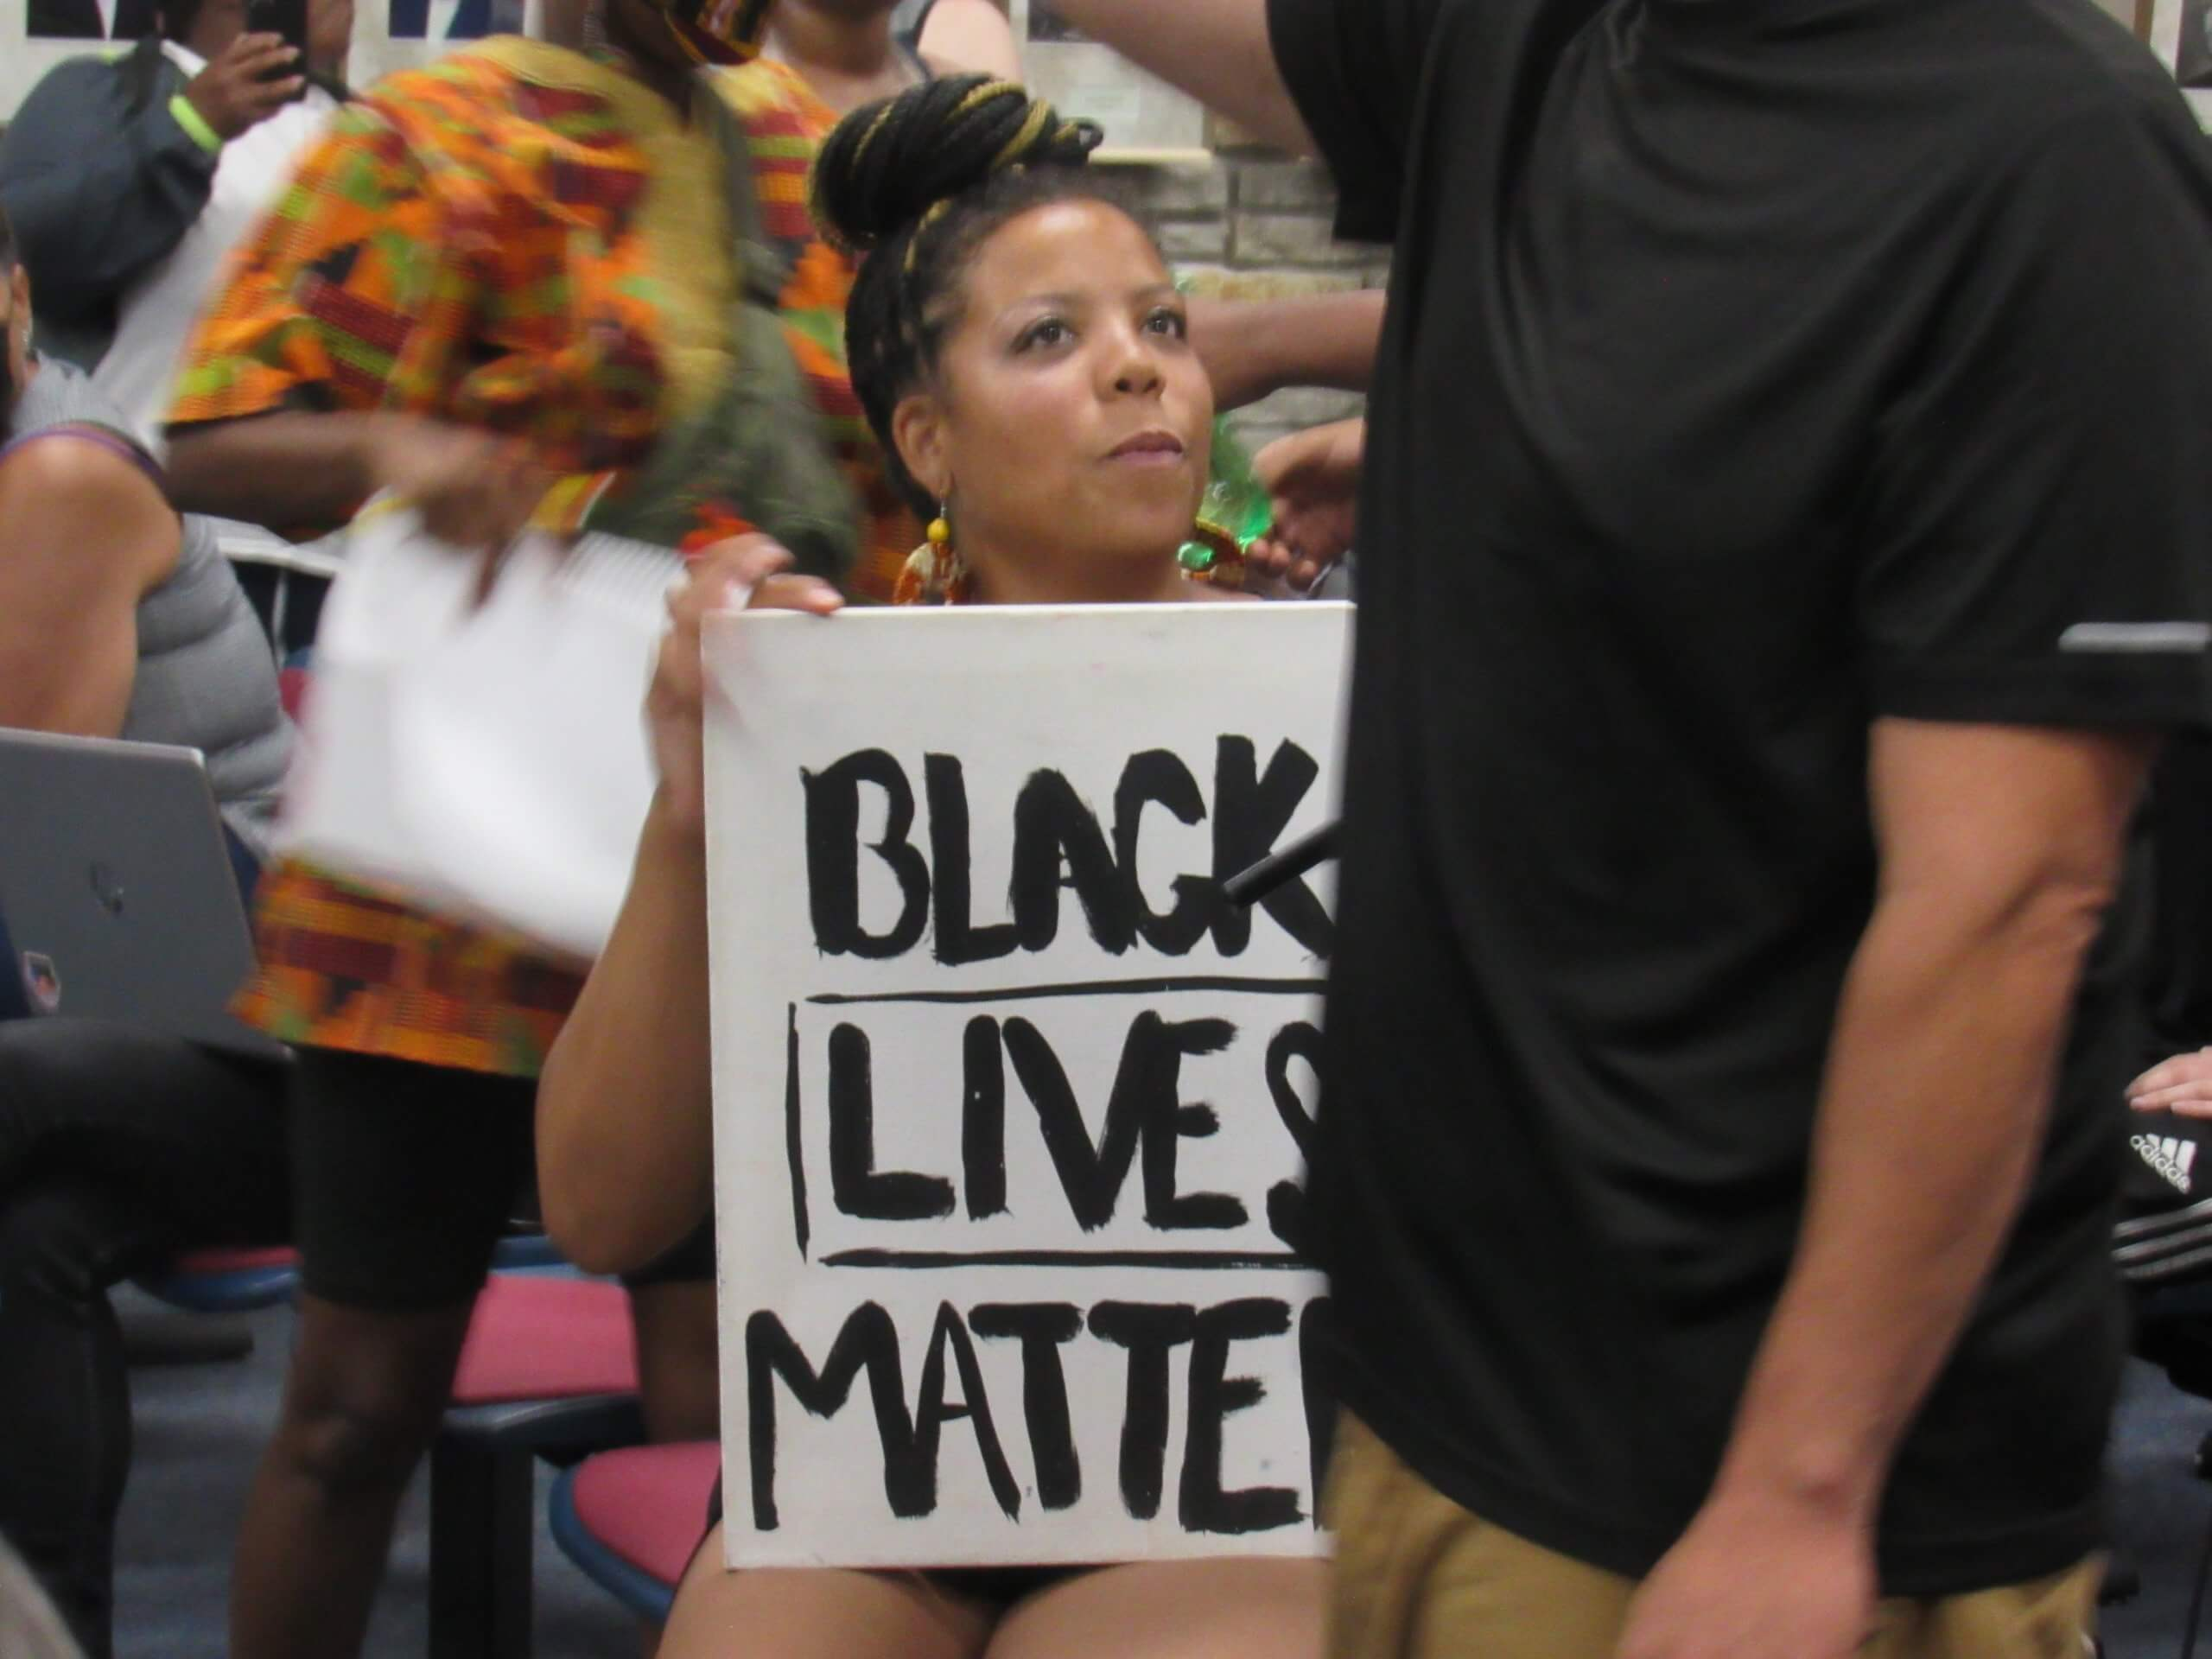 A Black Lives Matter protester attending a Wauwatosa City Council meeting. Protestes had been marching to get officer Joseph Mensah fired for killing three people over just five years. (Photo by Isiah Holmes)